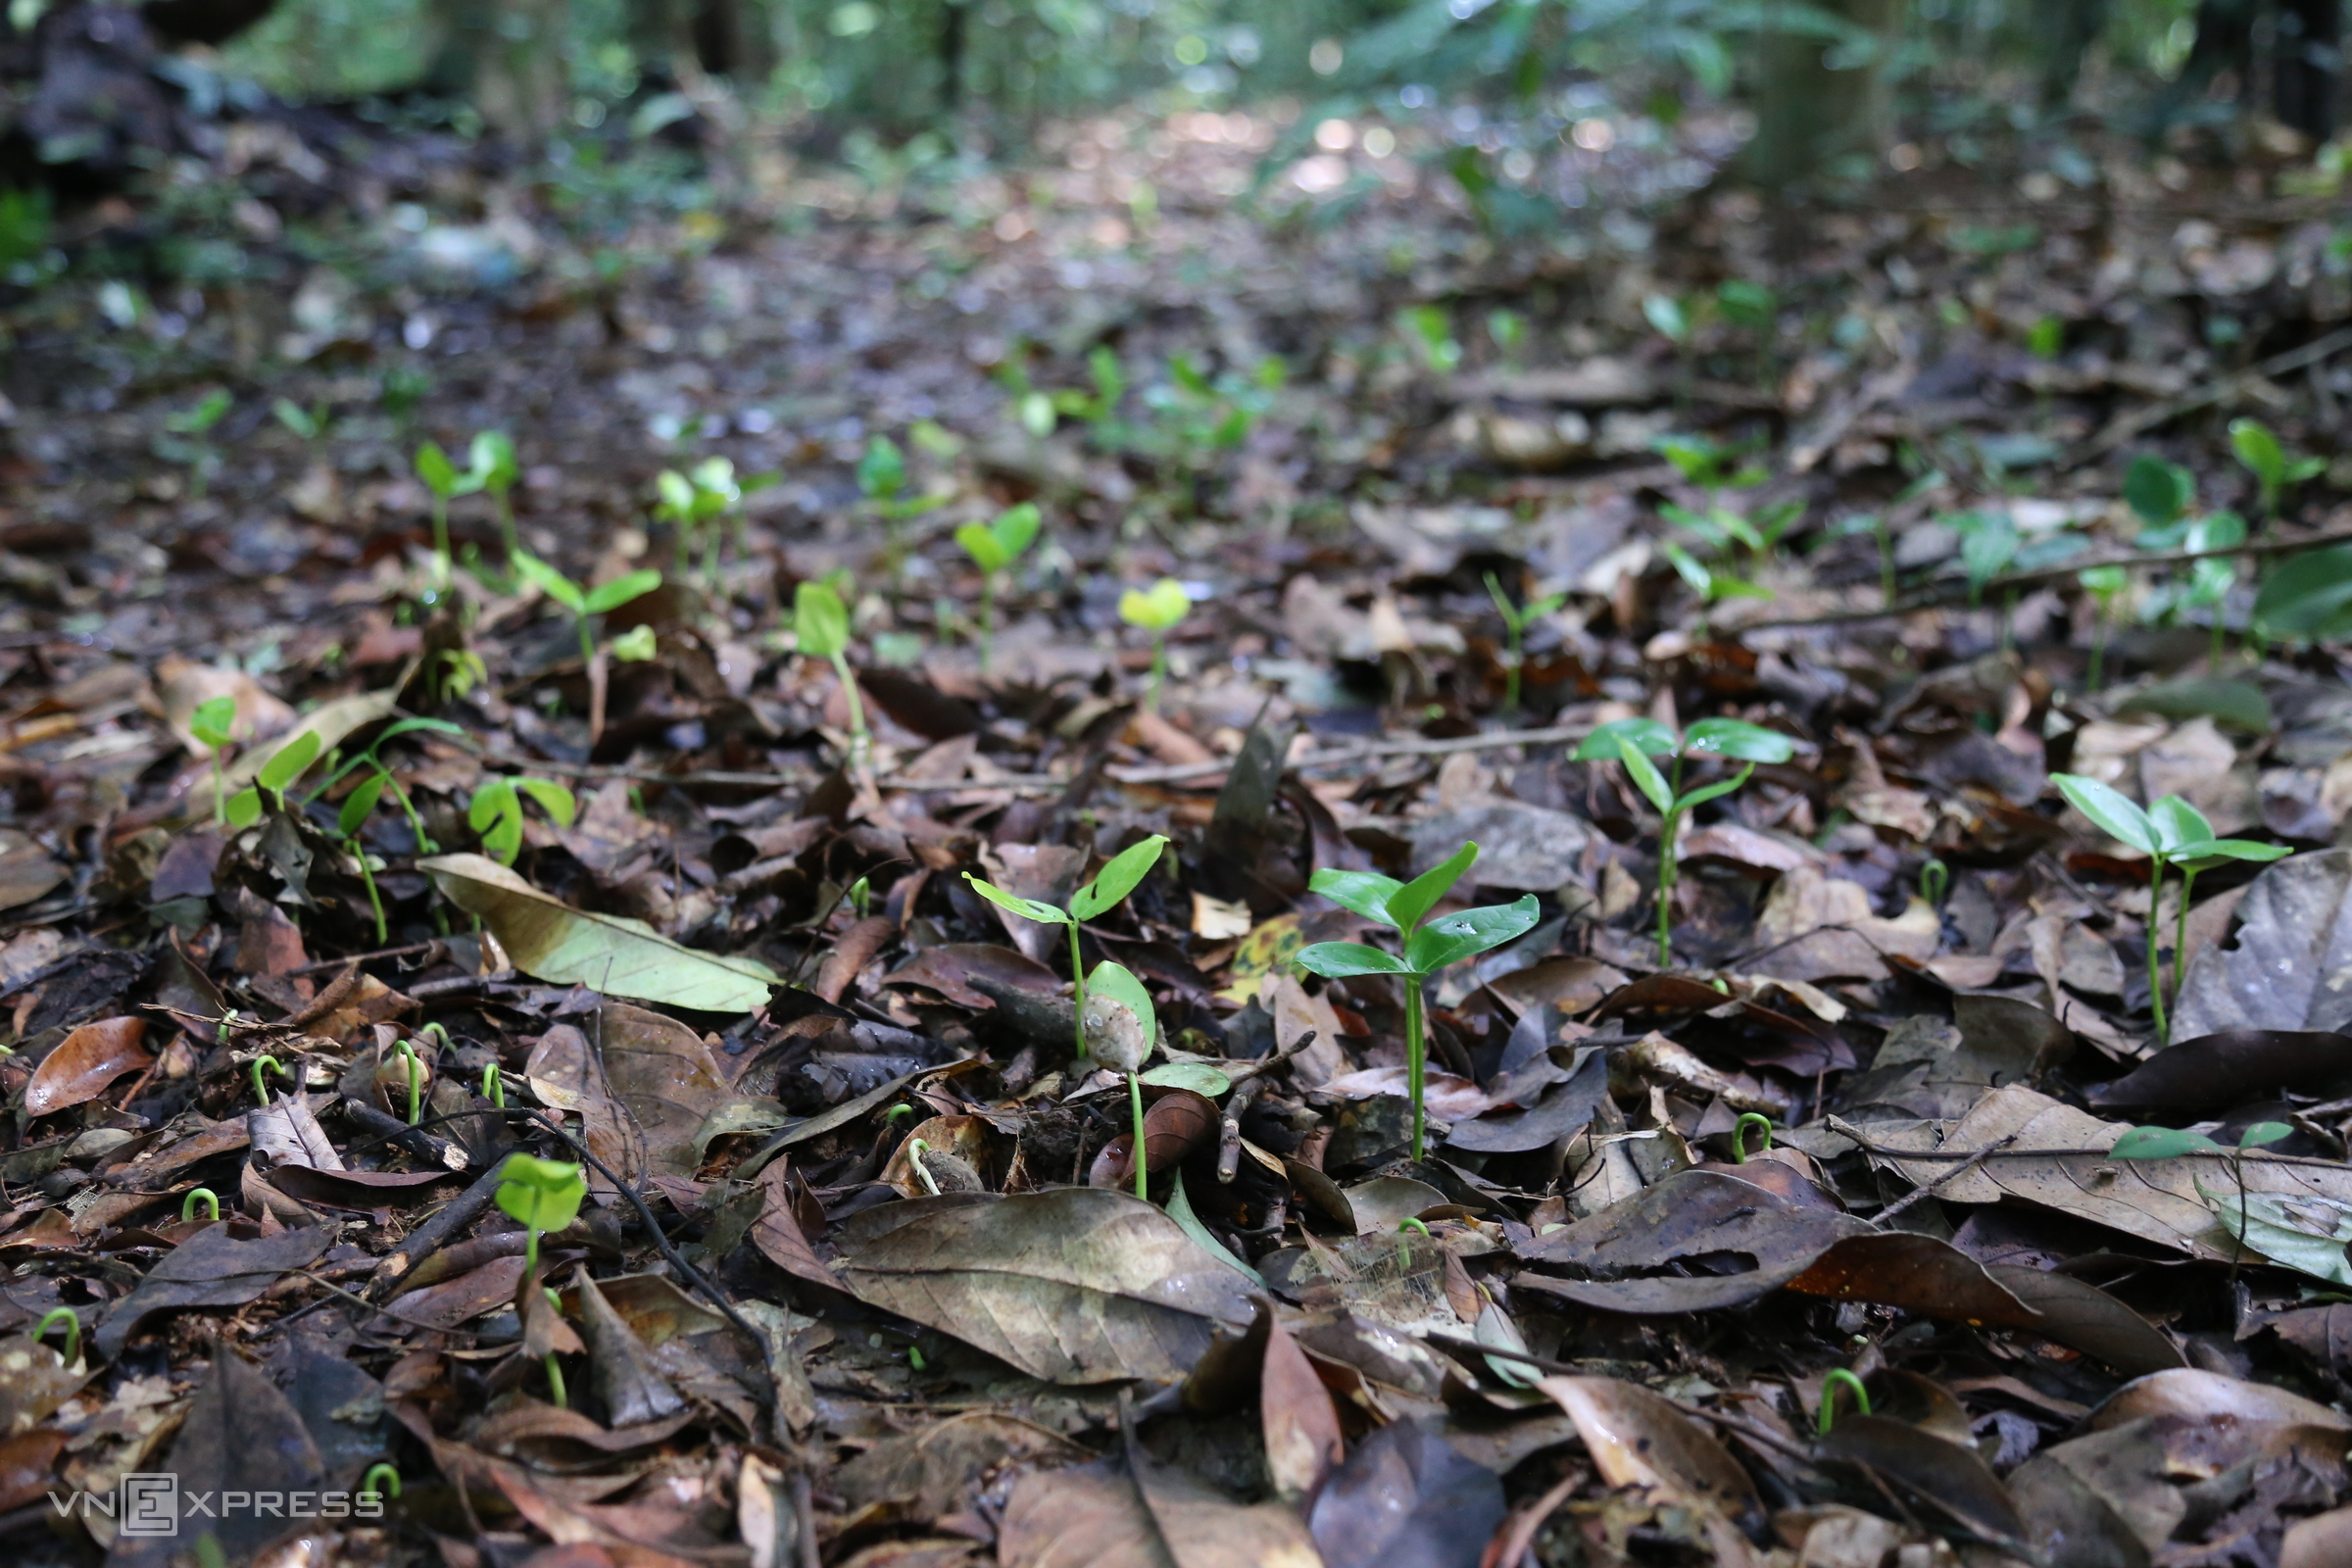 Quang Tri residents protect rare forest to let it grow again